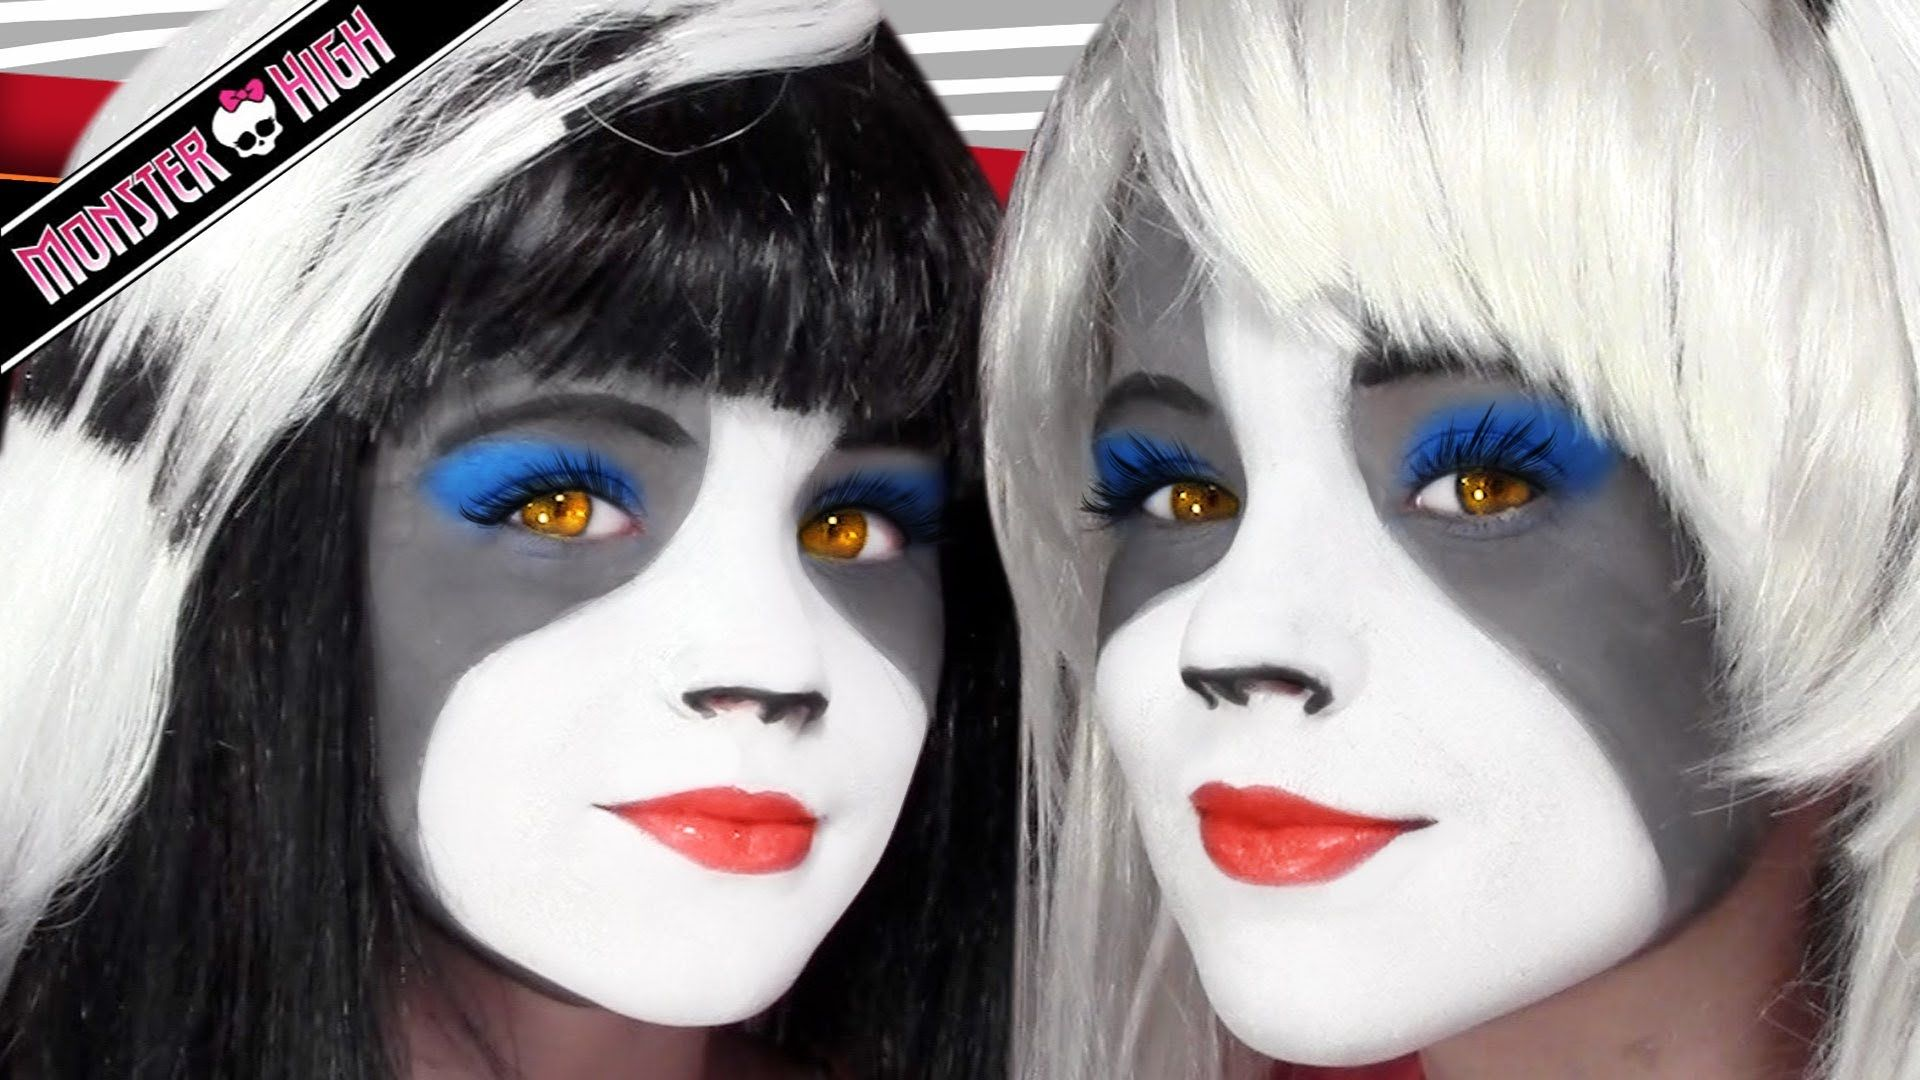 Makeup tutorials for kids monster high images any tutorial examples the werecat sisters monster high doll costume makeup tutorial for the werecat sisters monster high doll baditri Images